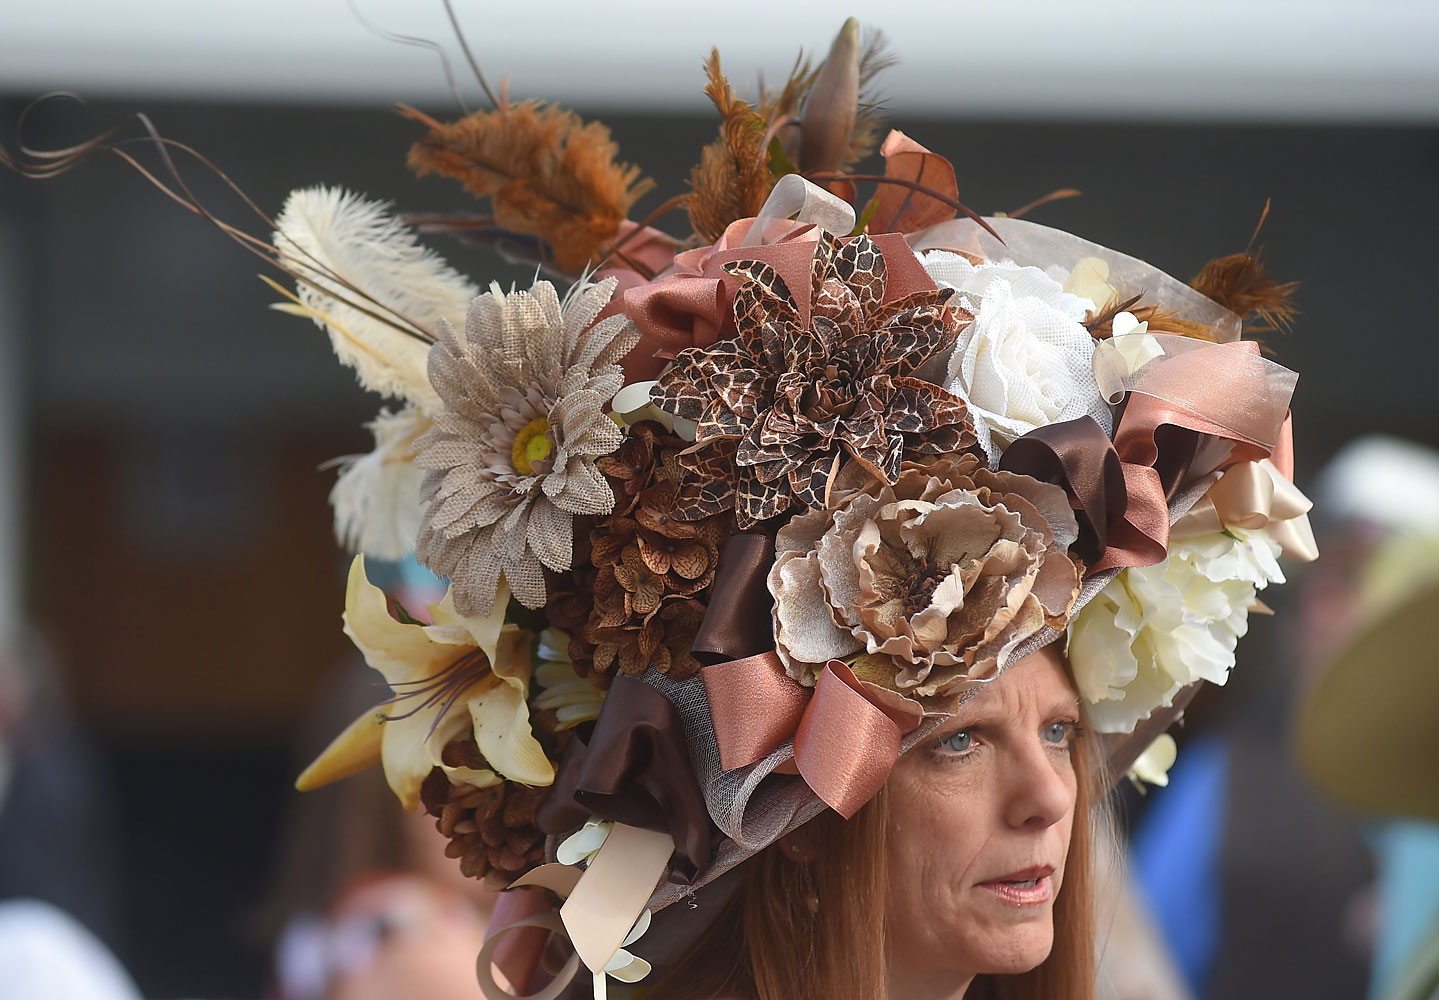 Tami Purcell of Knoxville, Tenn. looks on wearing a festive, natural toned Derby hat.